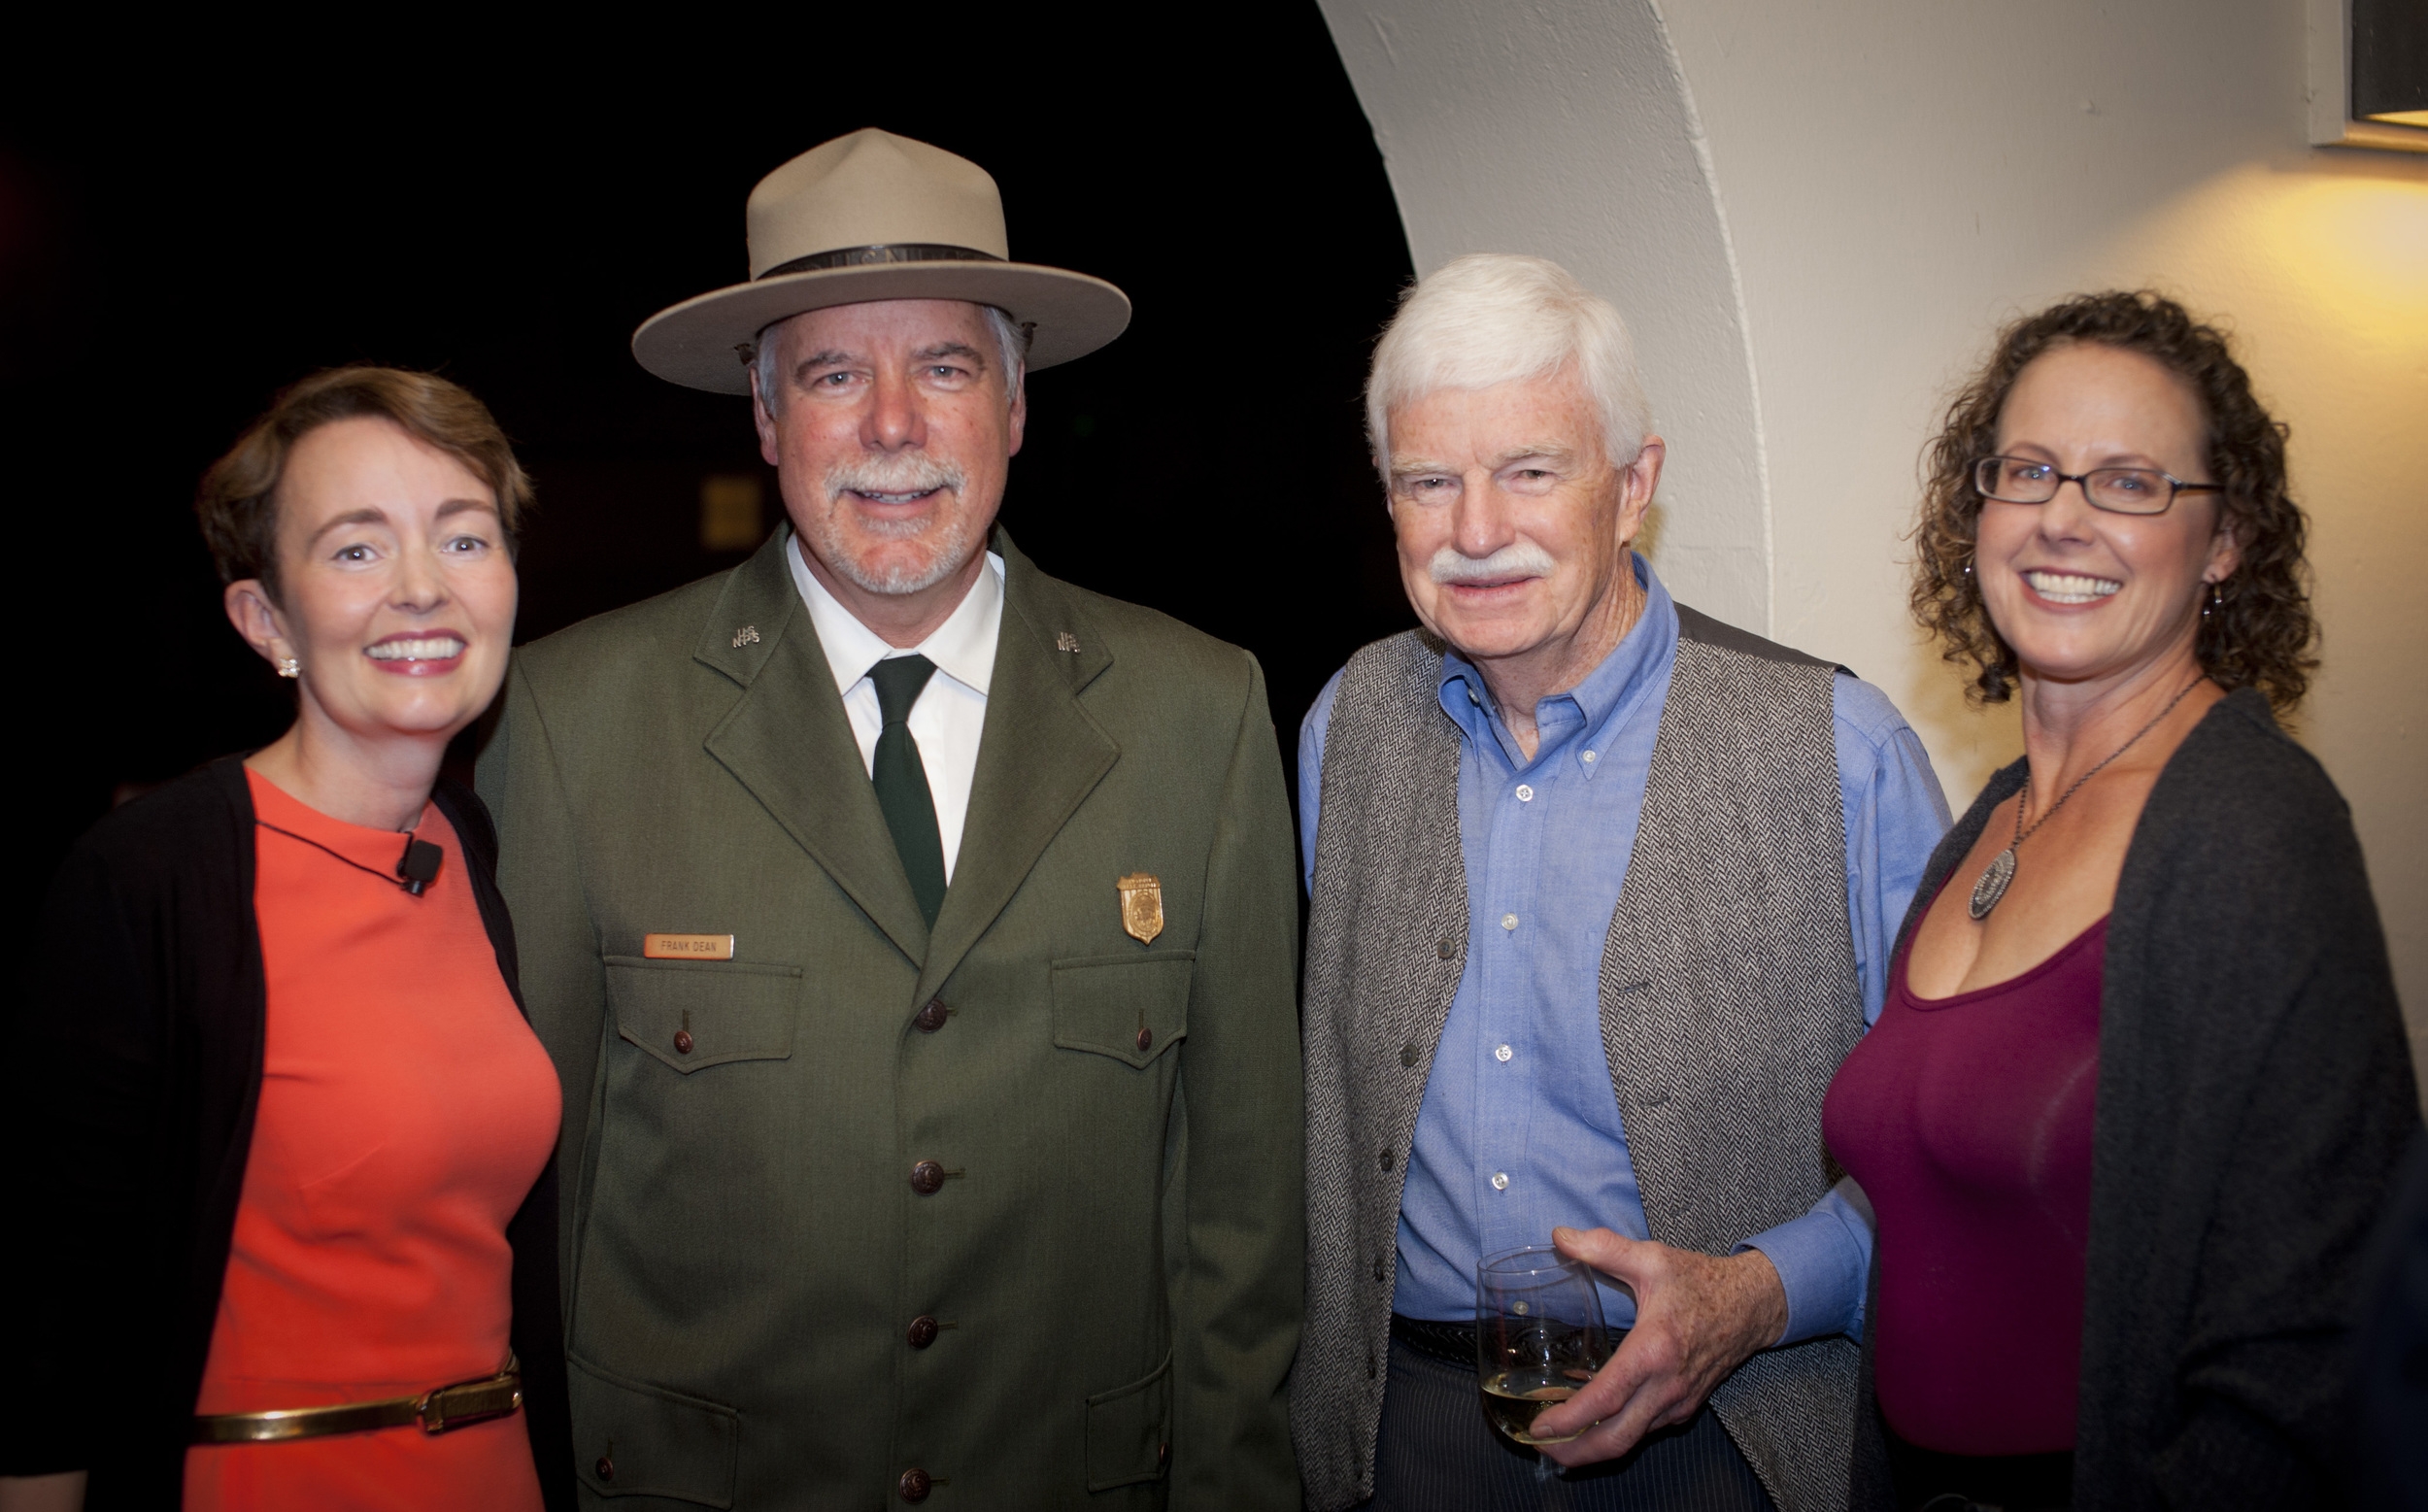 Pictured left to right: Slide Ranch Board Chair Suzette Clarke, General Superintendent of the Golden Gate National Recreation Area Frank Dean, Slide Ranch Founder Doug Ferguson, Slide Ranch Executive Director Marika Bergsund.